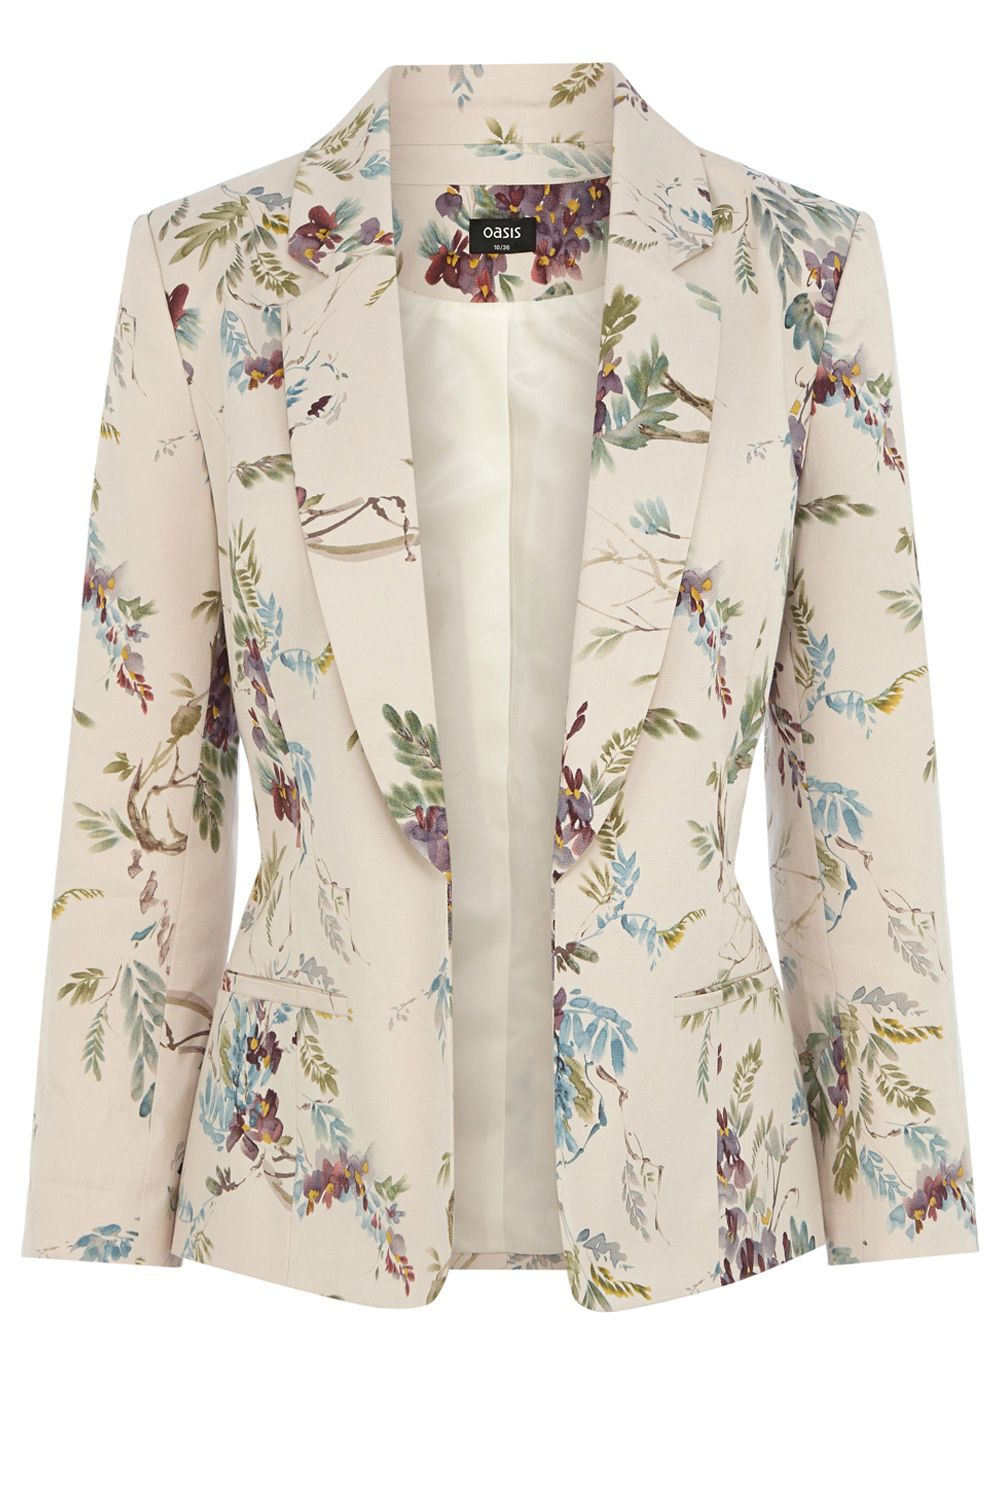 A very cute smart summer outfit Wisteria Jacket | Multi